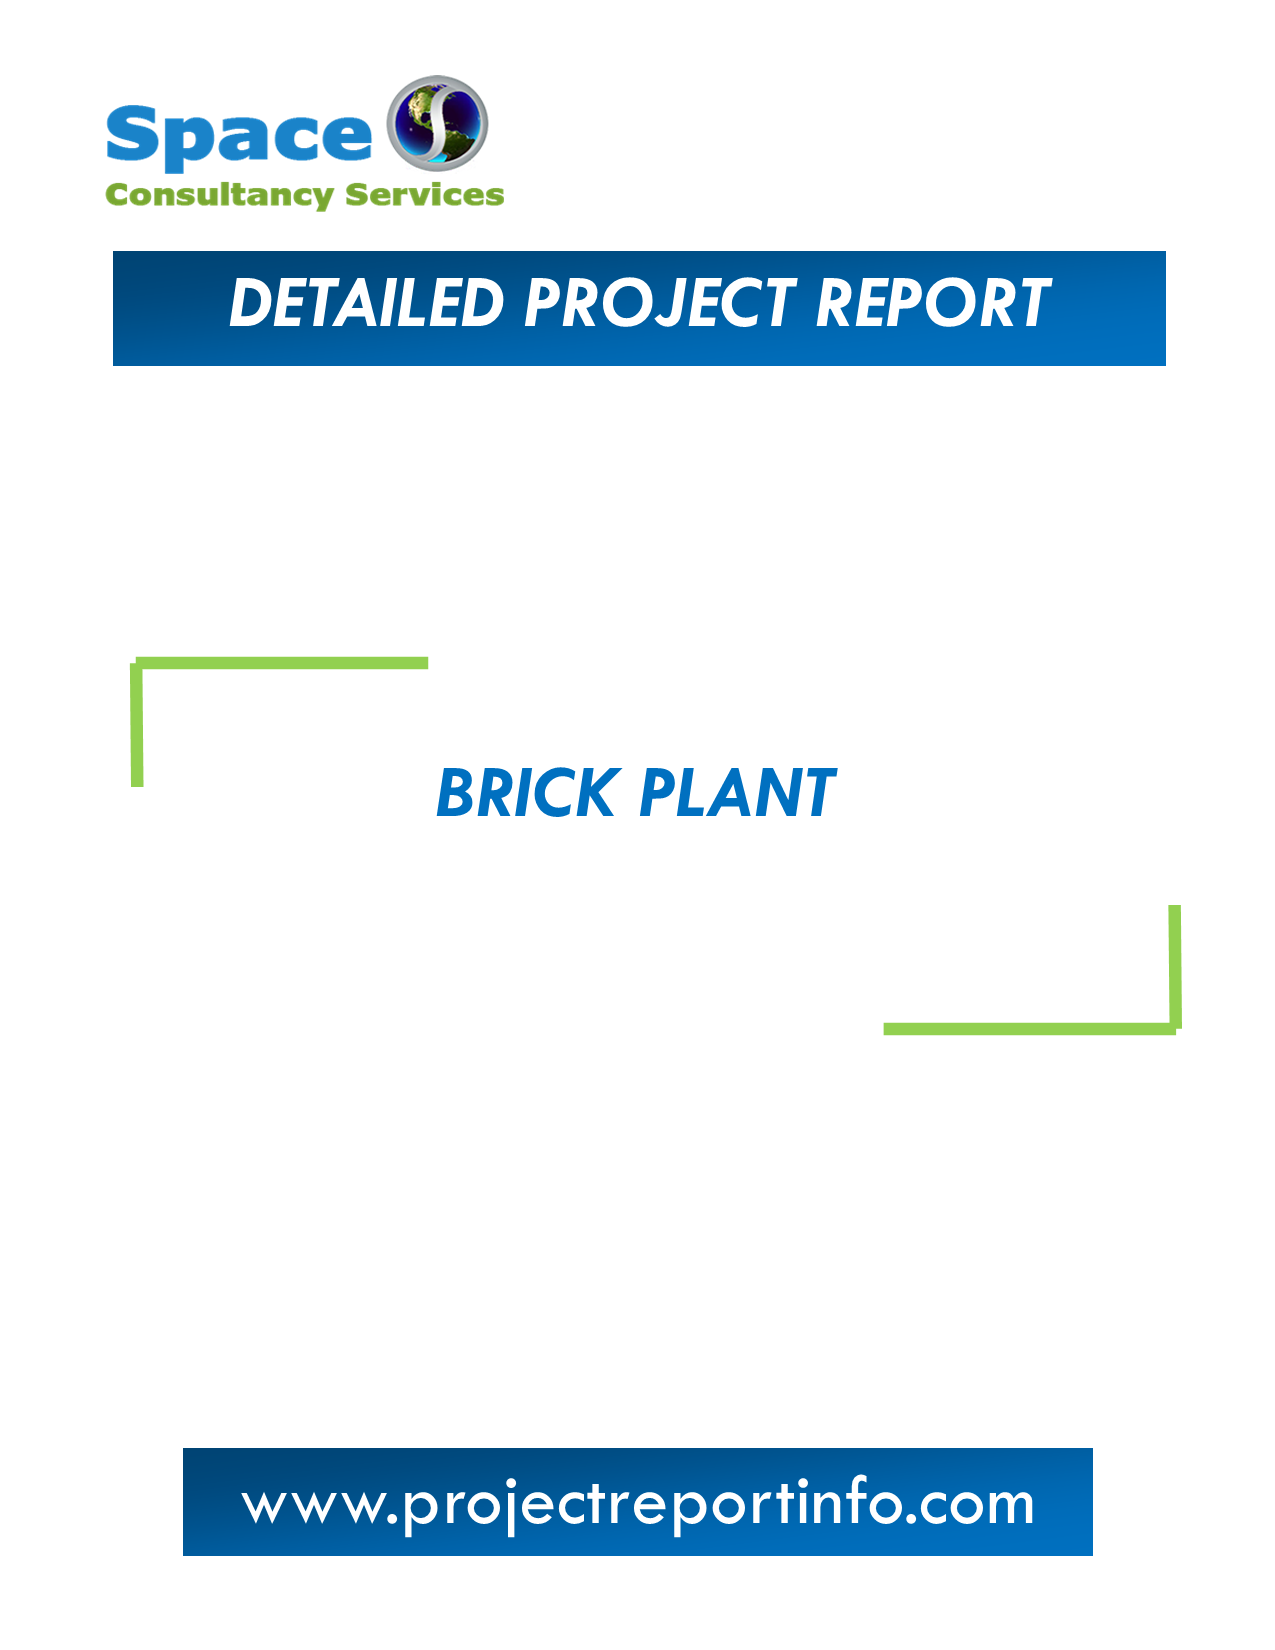 Project Report on Brick plant